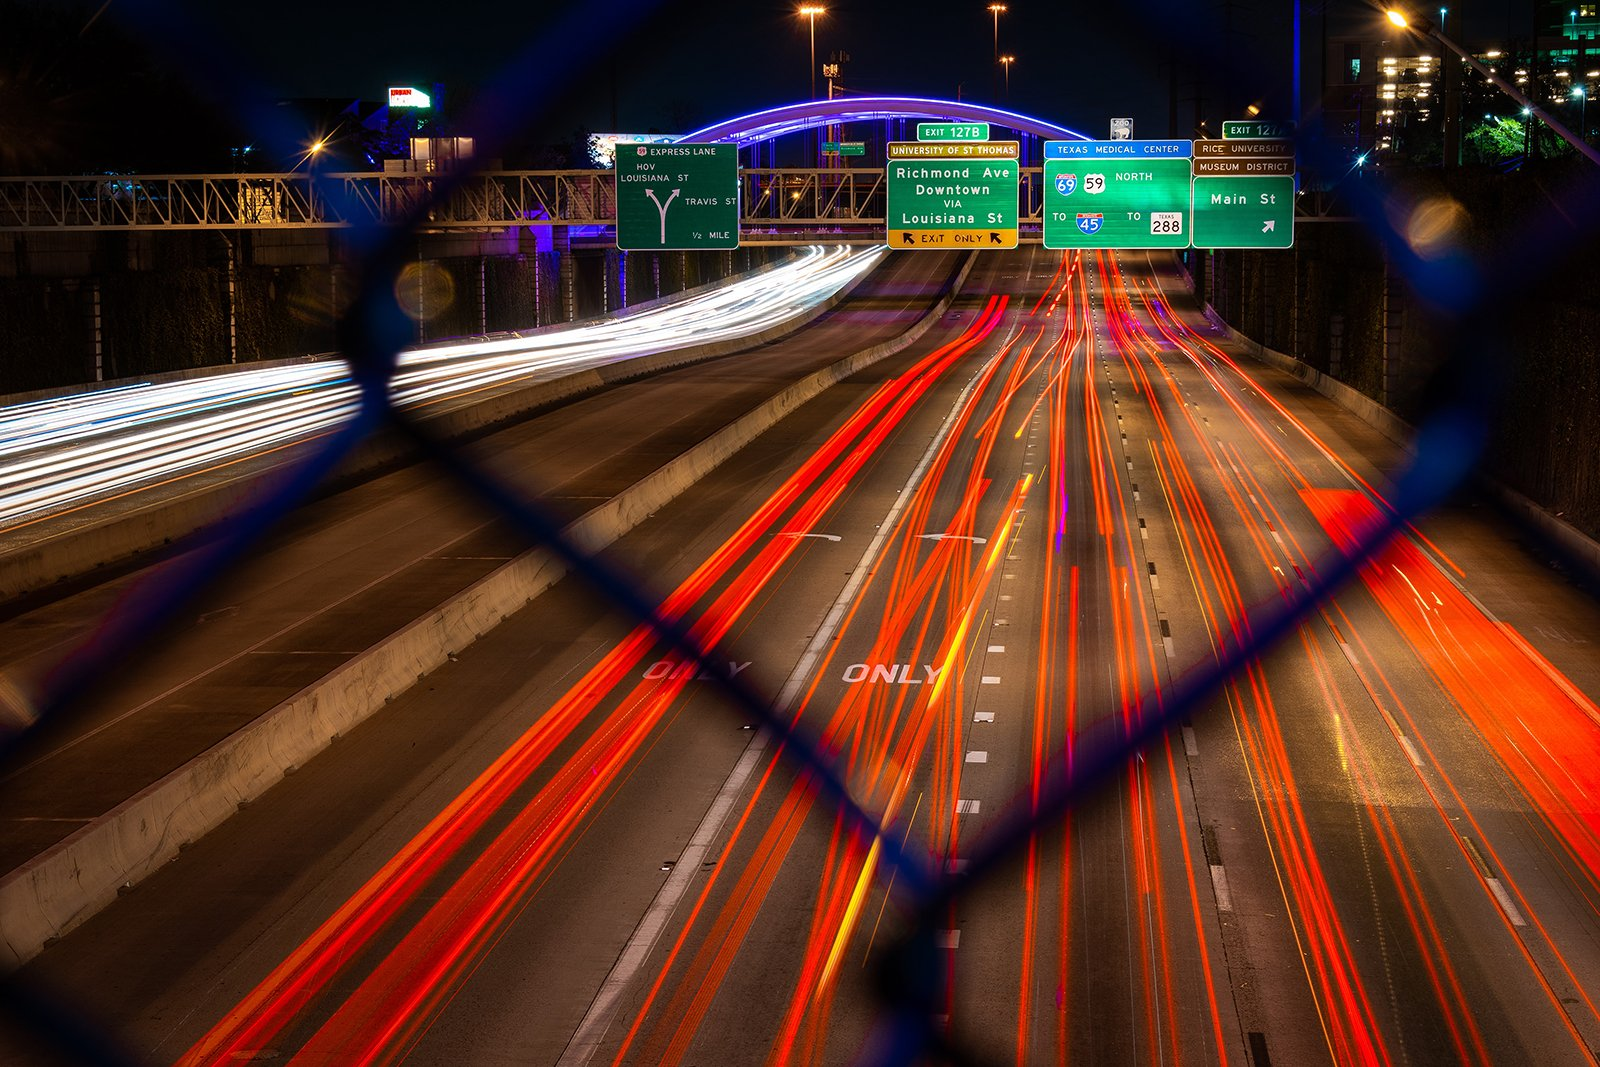 A photo with a slow shutter speed shows blurred vehicle lights in Houston, Texas. Photo by Manuel Velasquez/Unsplash/Creative Commons